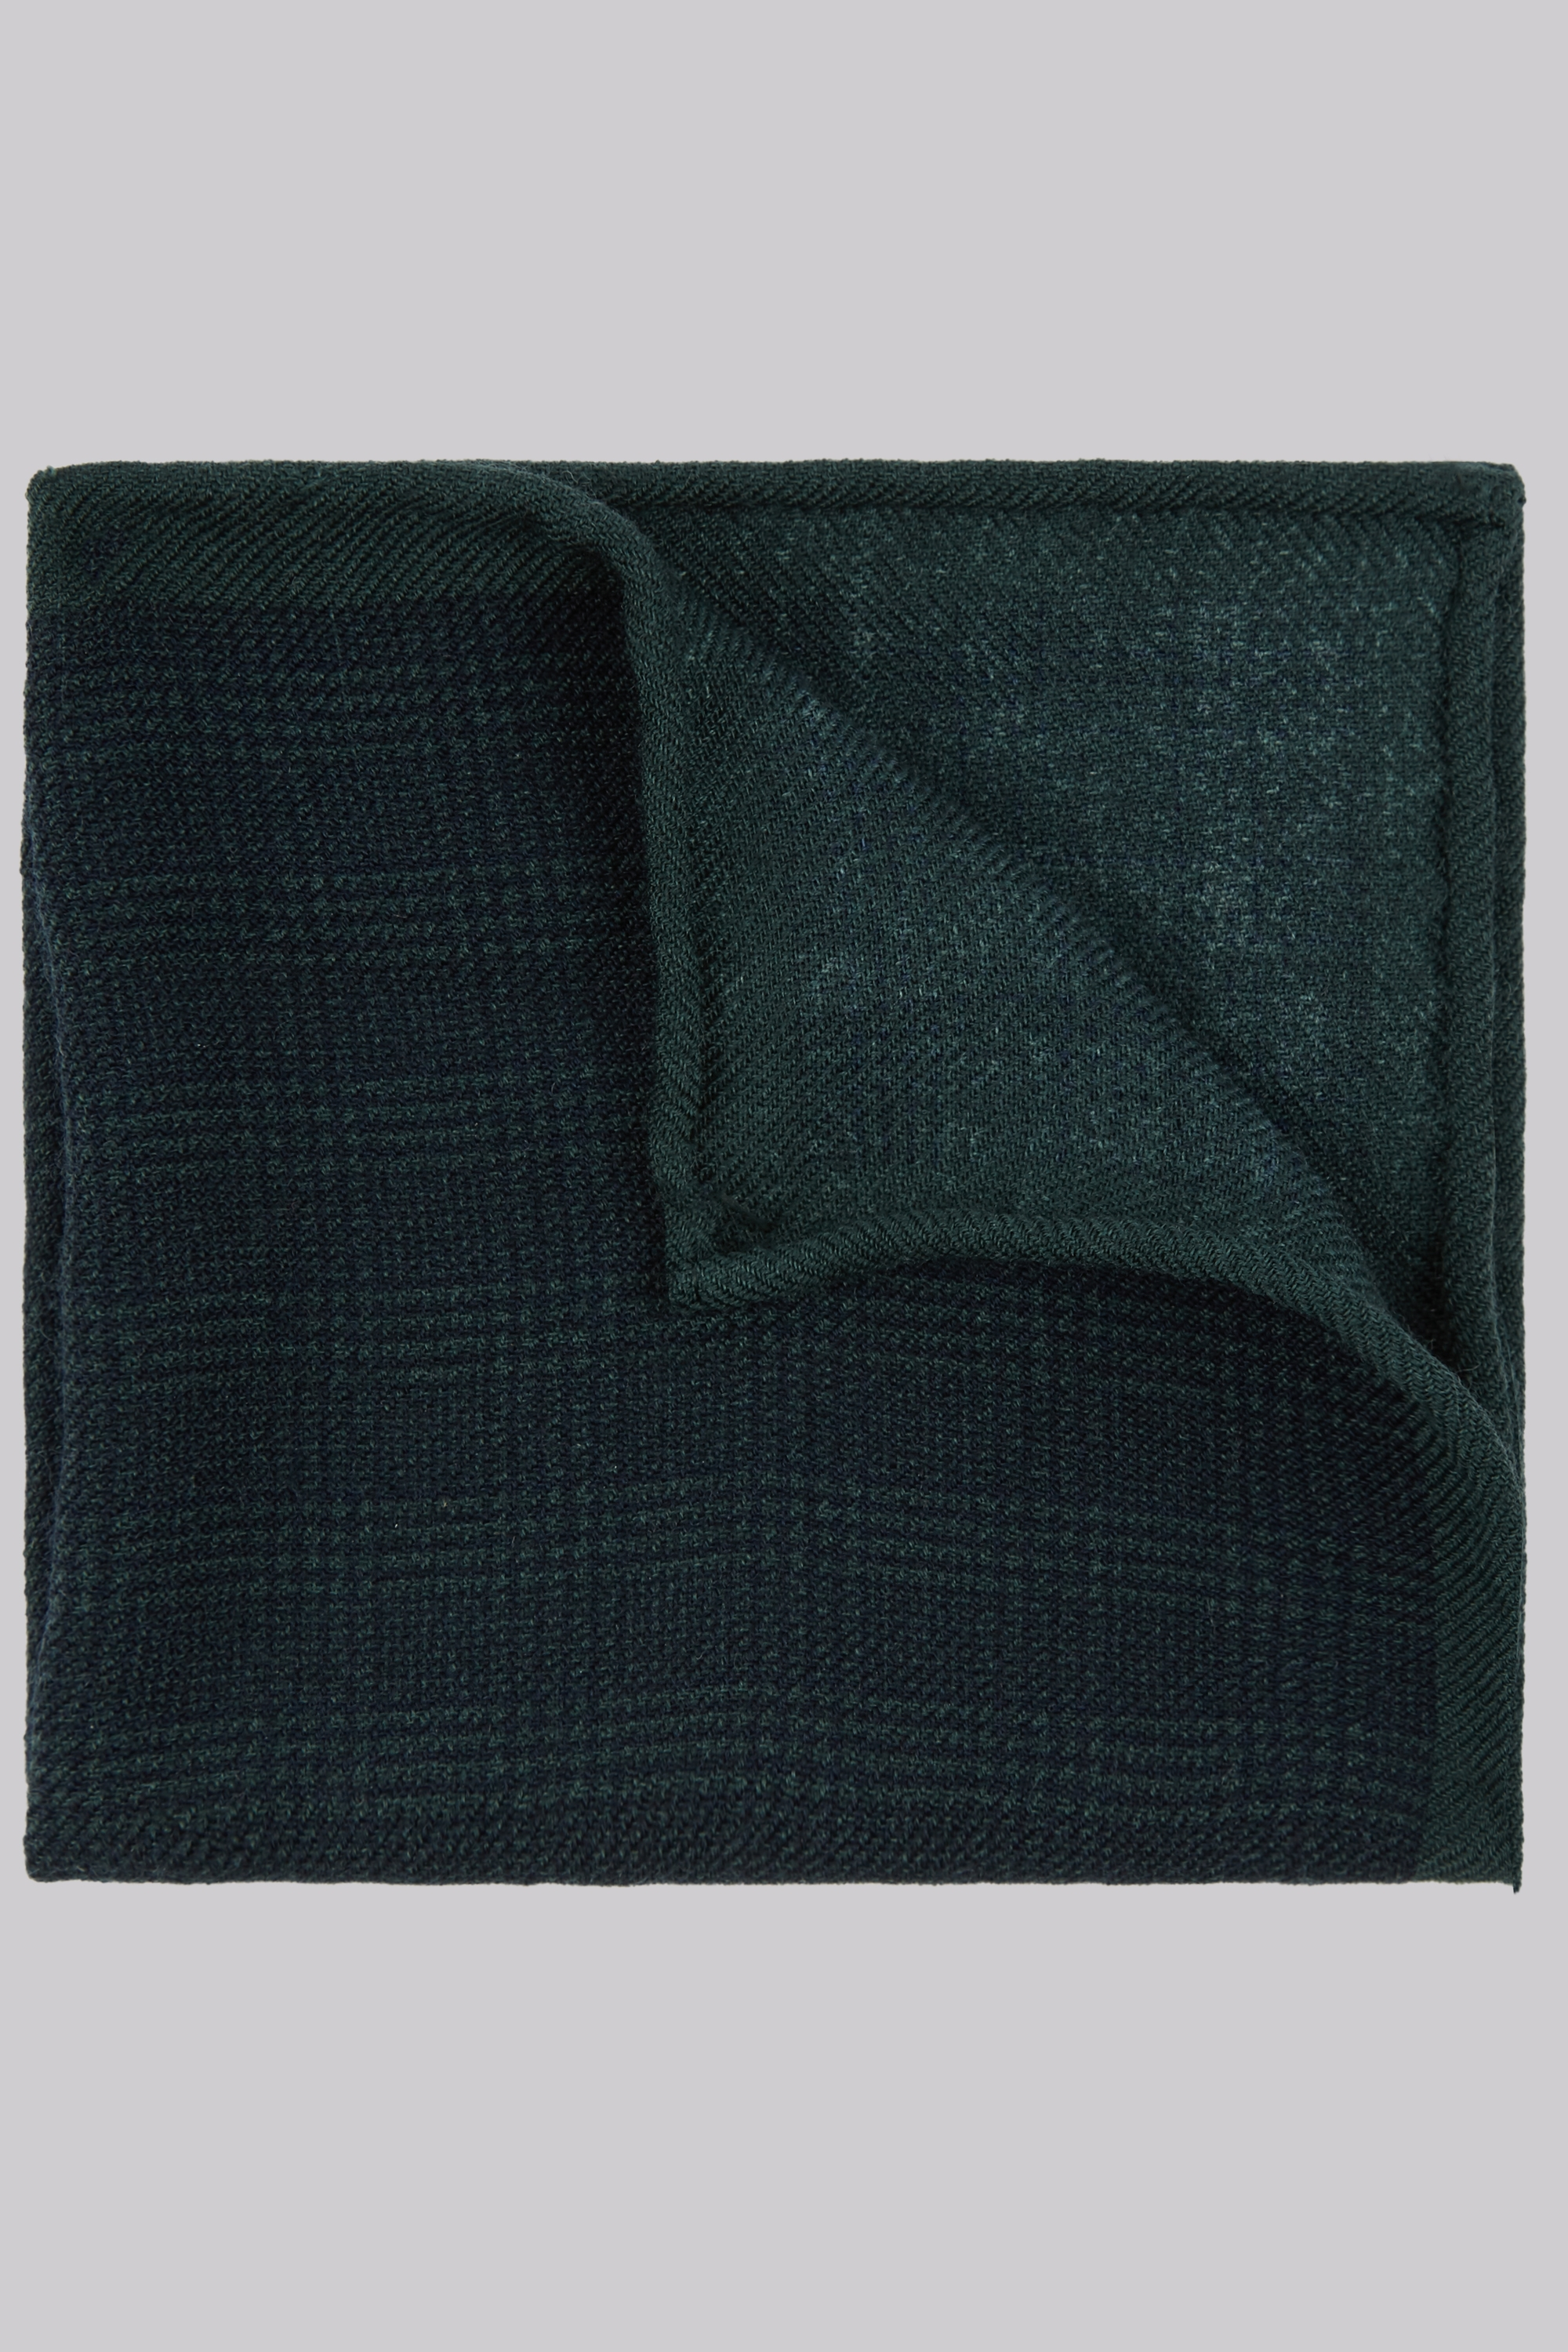 Moss Bros Moss 1851 Green Wool Check Pocket Square